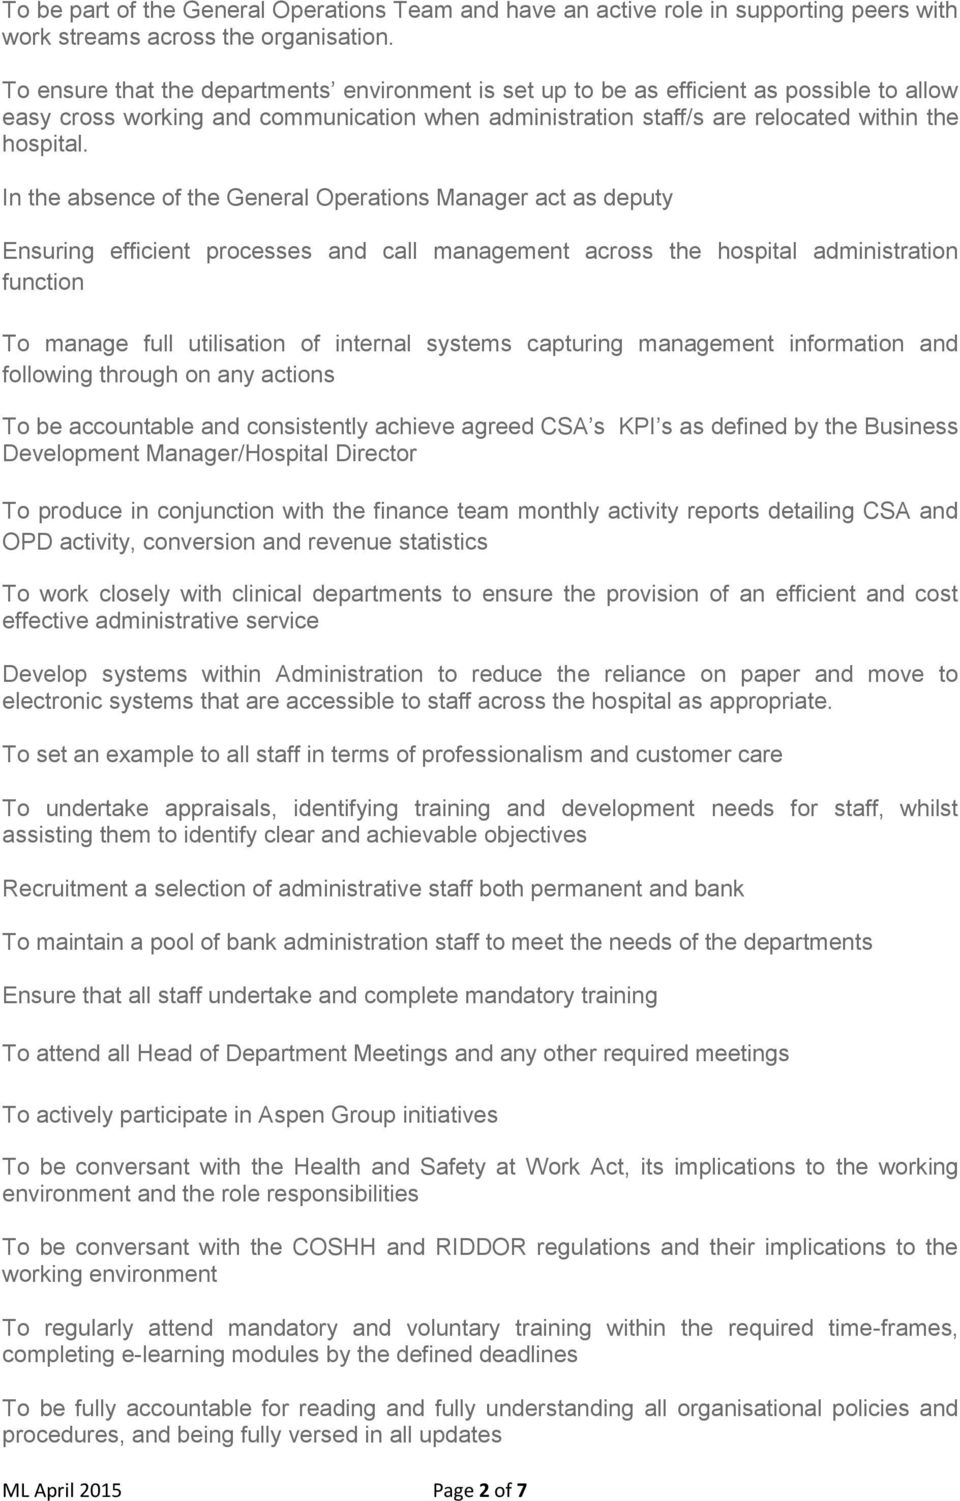 In the absence of the General Operations Manager act as deputy Ensuring efficient processes and call management across the hospital administration function To manage full utilisation of internal